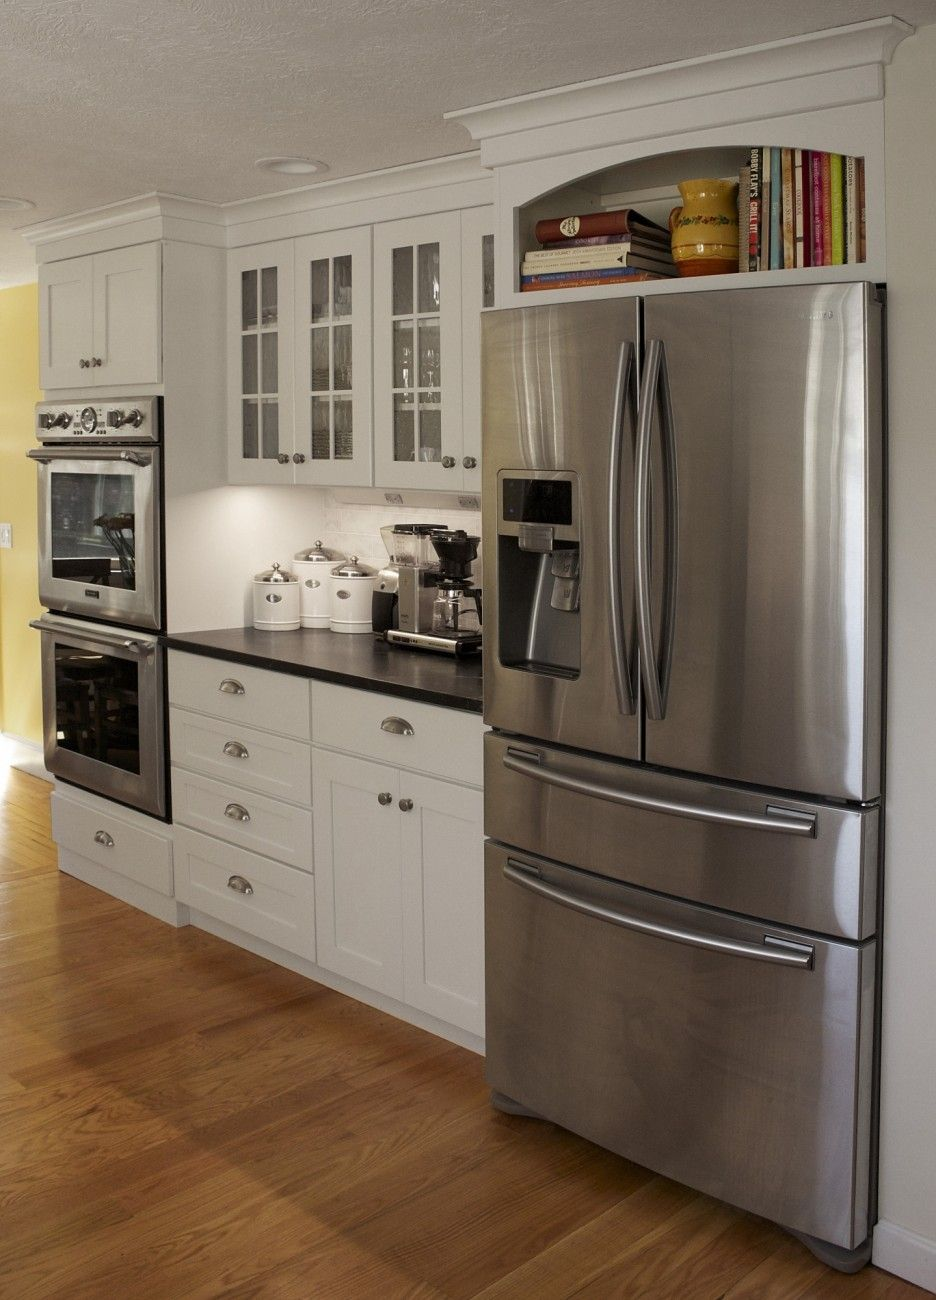 Kitchen Cabinet Remodel Ideas: Galley Kitchen Remodel For Small Space : Fridge Gallery